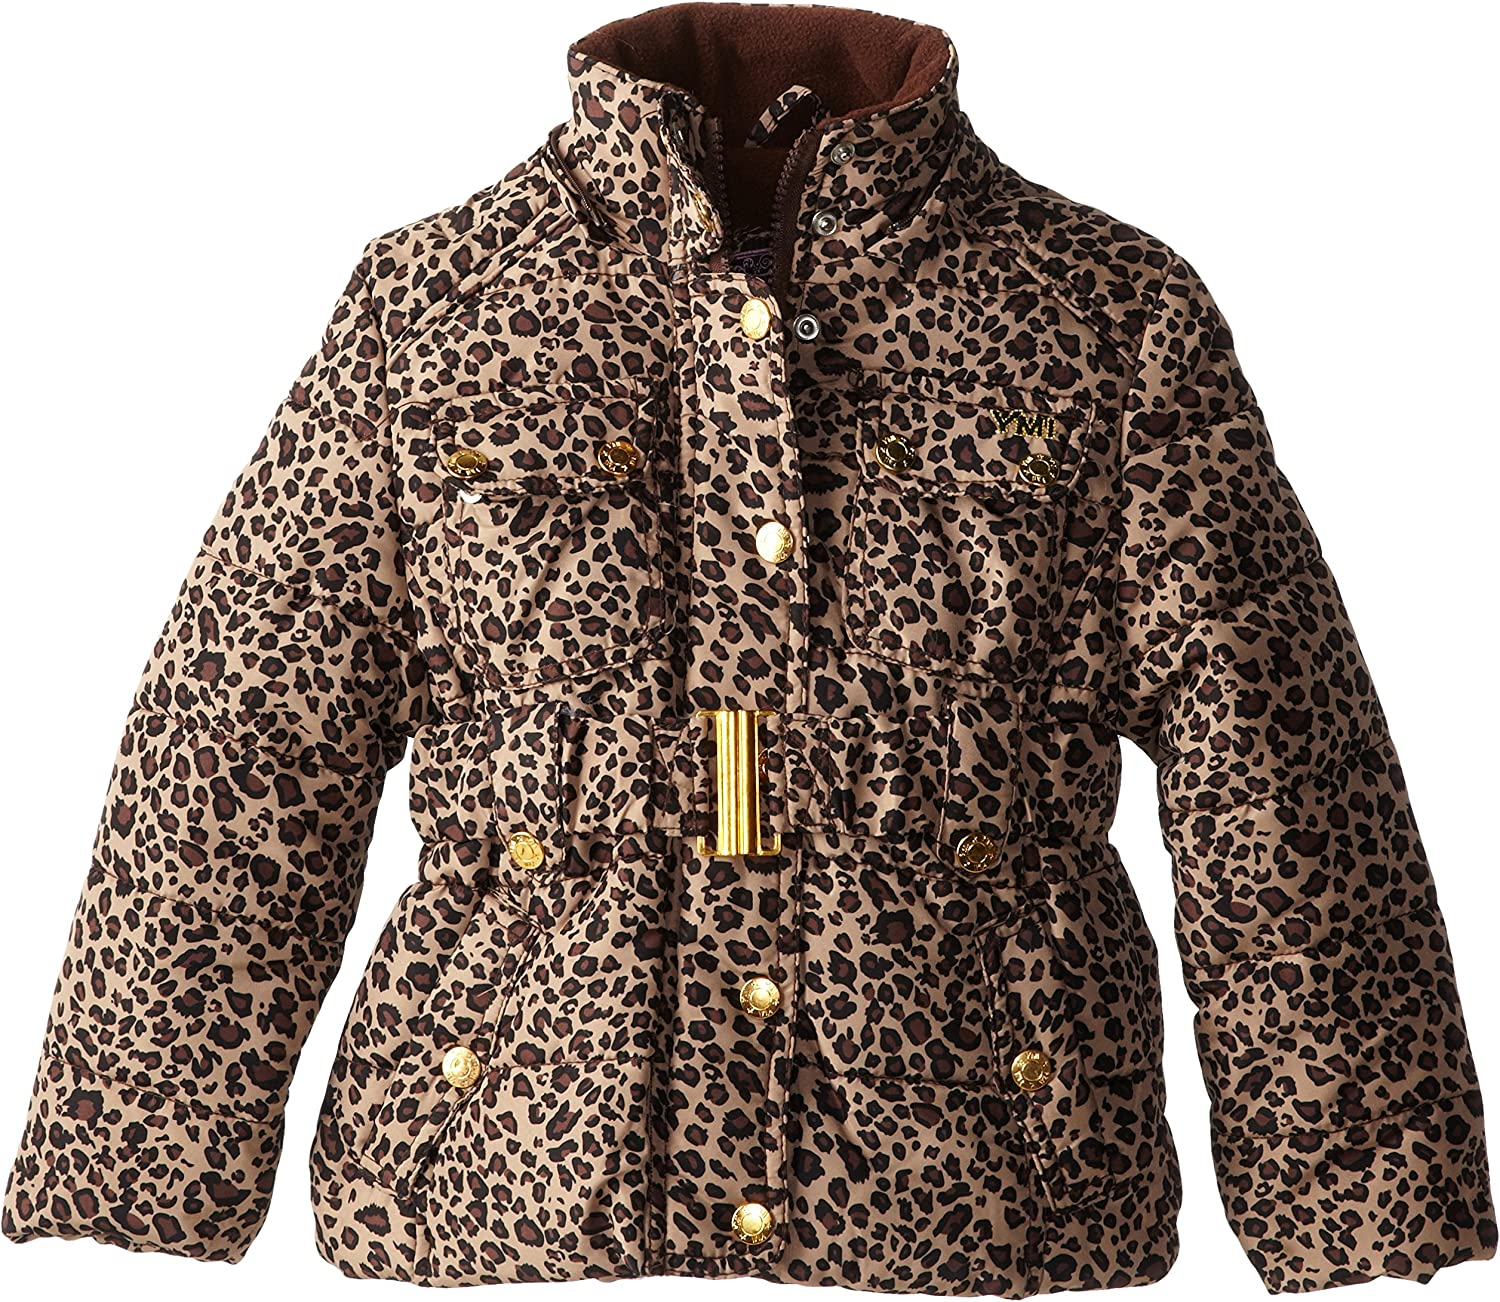 YMI Little Girls Belted Bubble Jacket with Hood